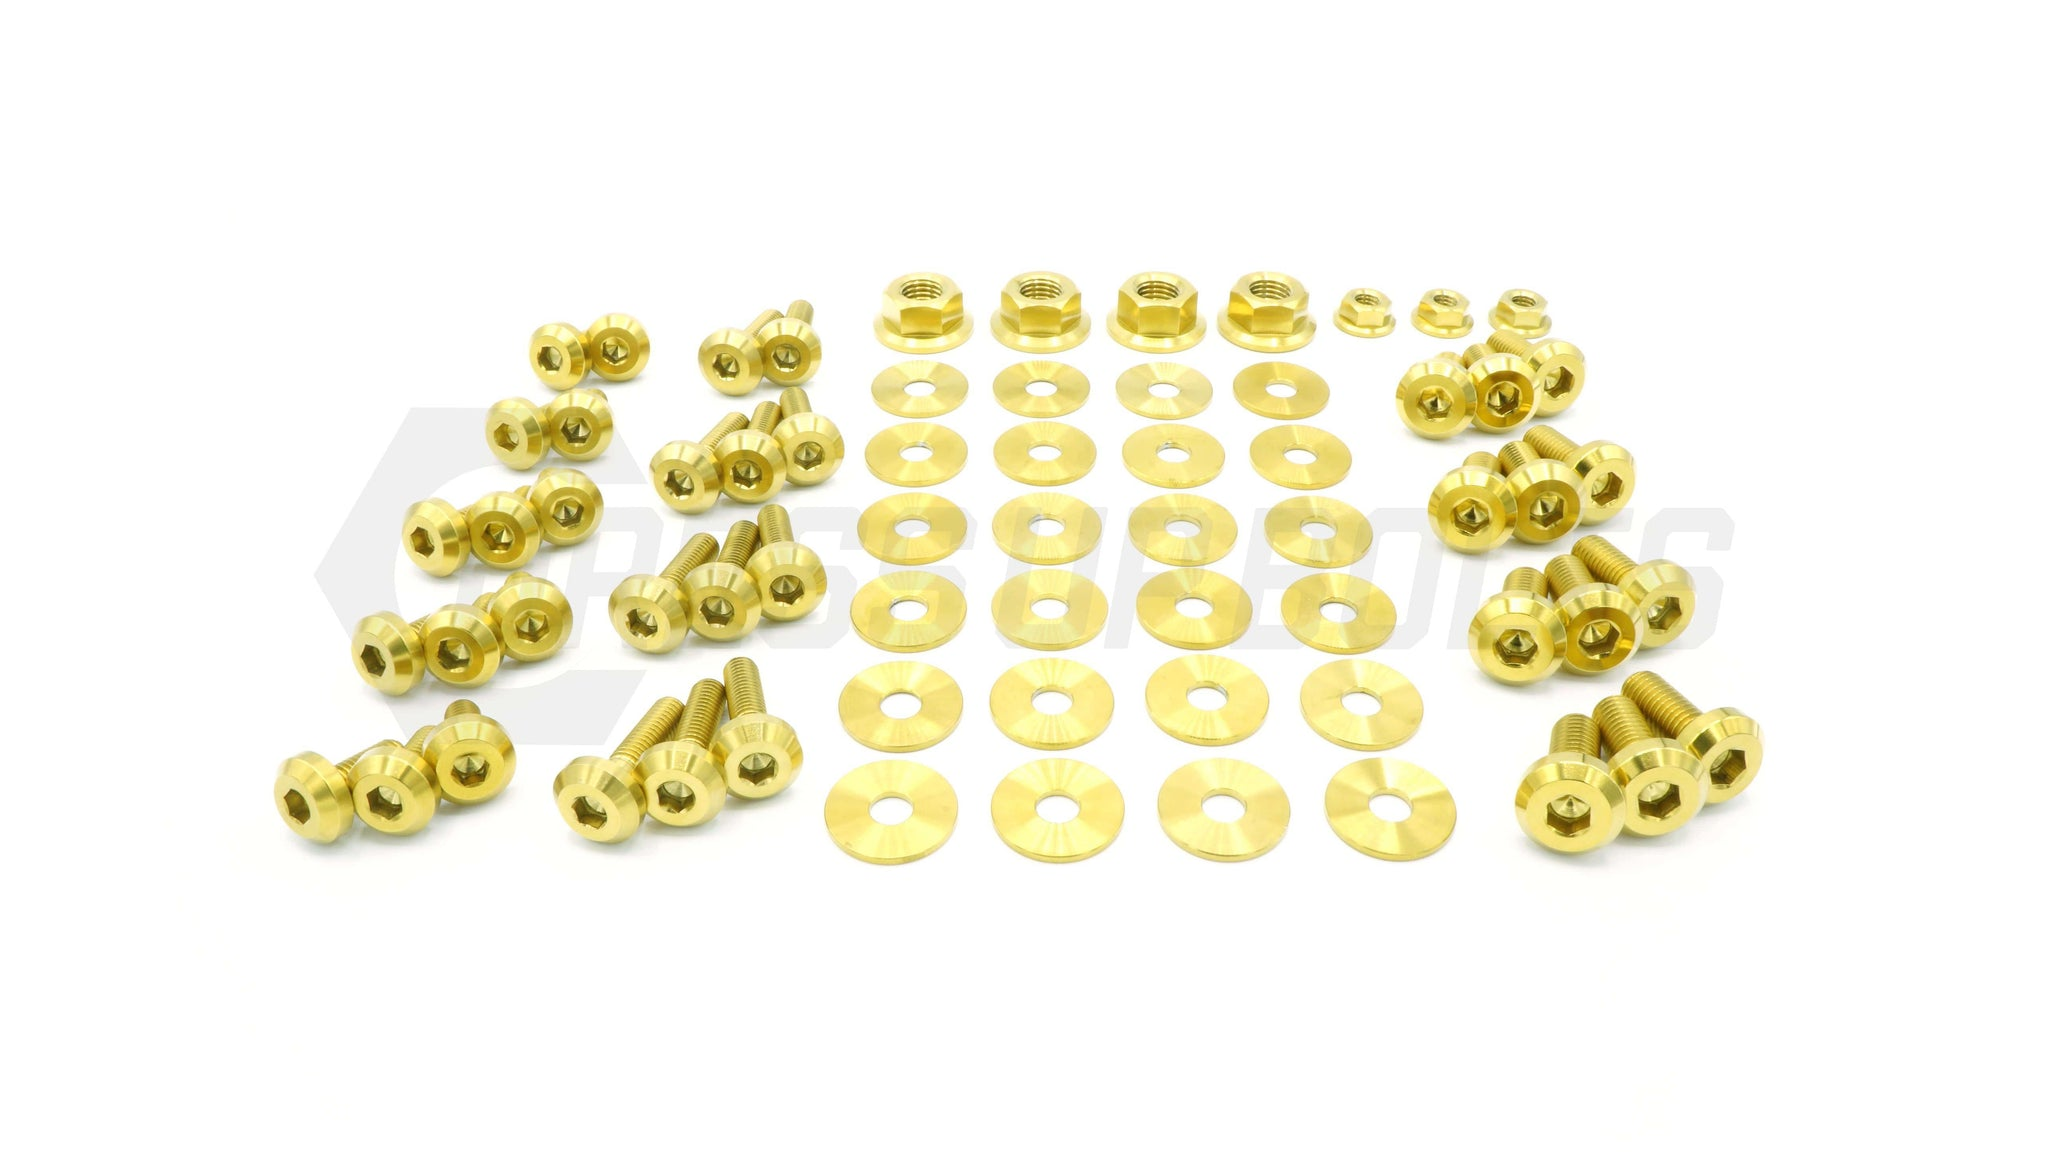 Dress Up Bolts Titanium Hardware Engine Bay Kit - Nissan Skyline GT-R (R32) - DressUpBolts.com